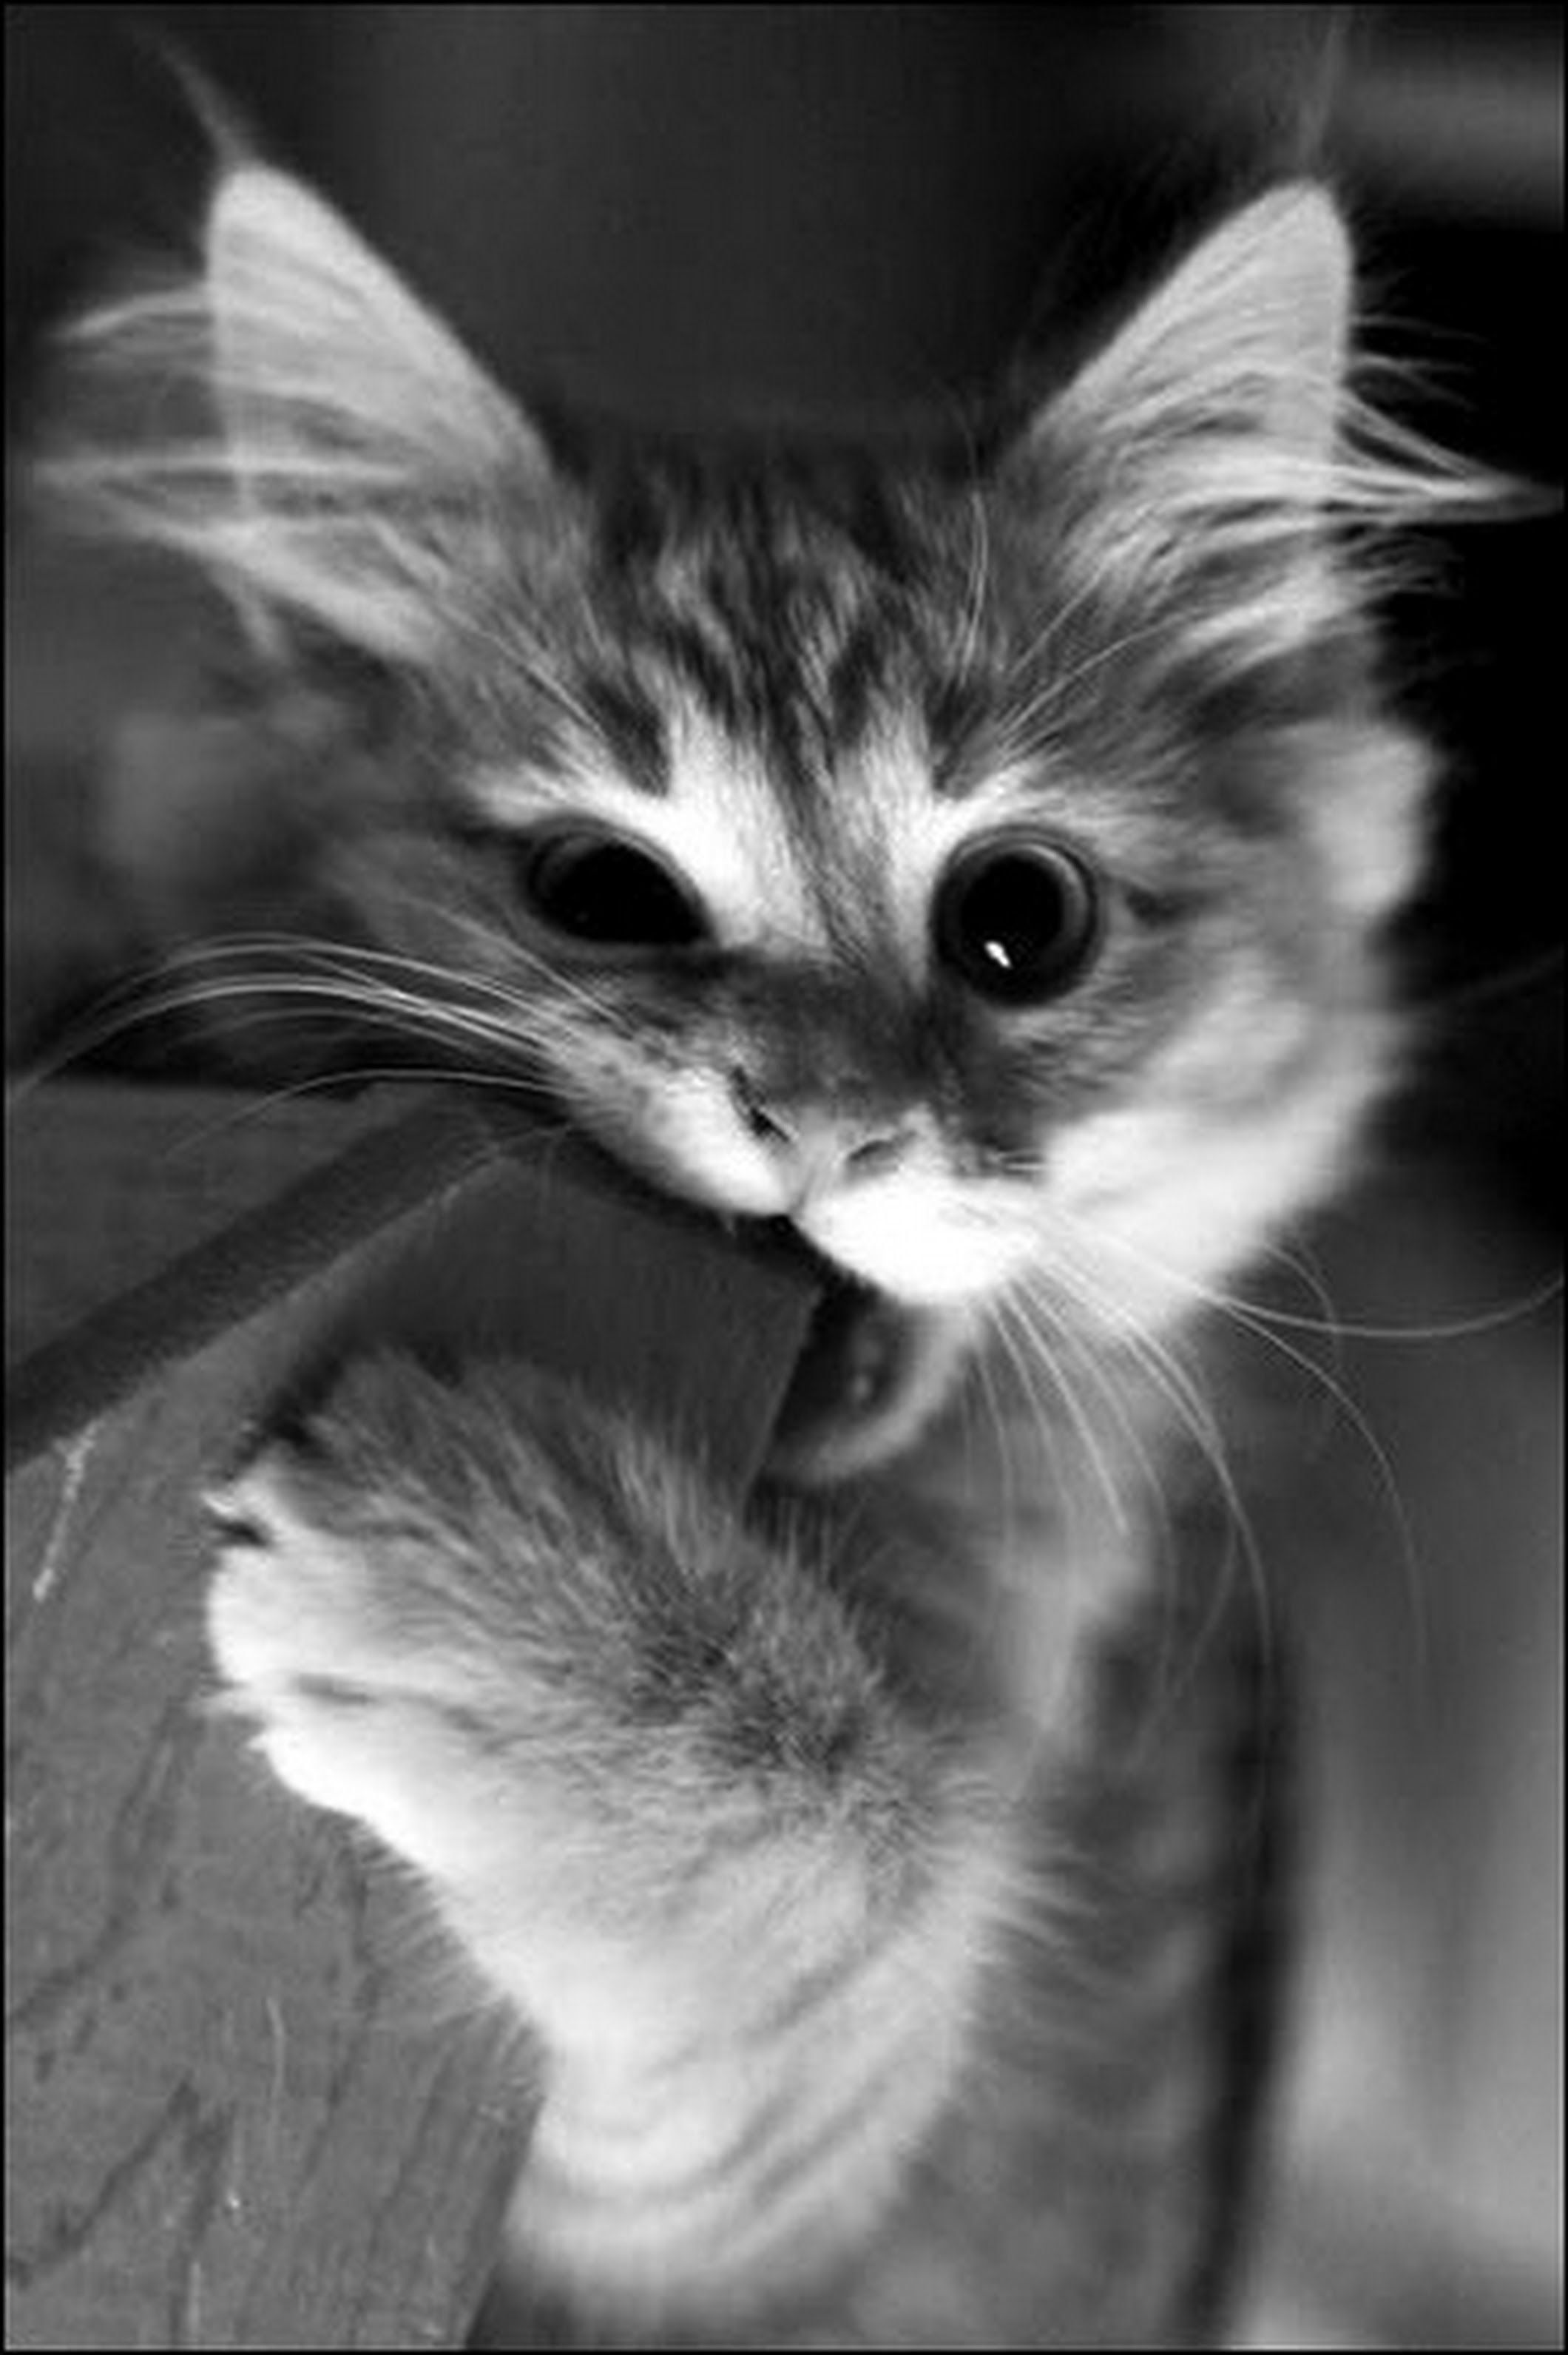 Puppies And Kittens Together Puppies And Kittens In 2020 Kitten Biting Cute Animals Kittens Cutest